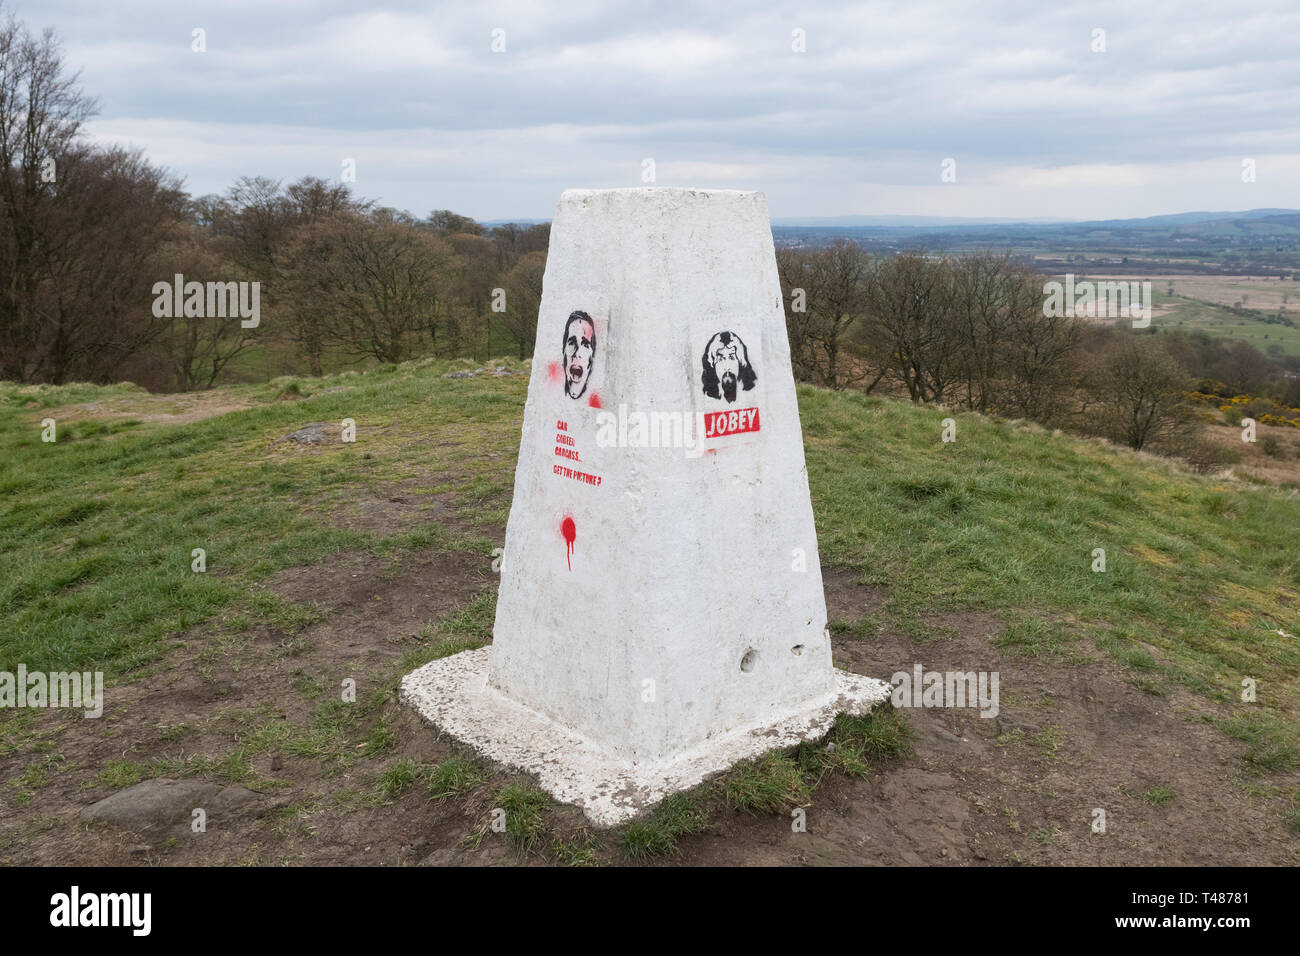 white trigpoint with stencil graffiti - Castle Hill Hillfort, nr Bar Hill Fort, Antonine Wall,  Twechar, East Dunbartonshire, Scotland, UK - Stock Image